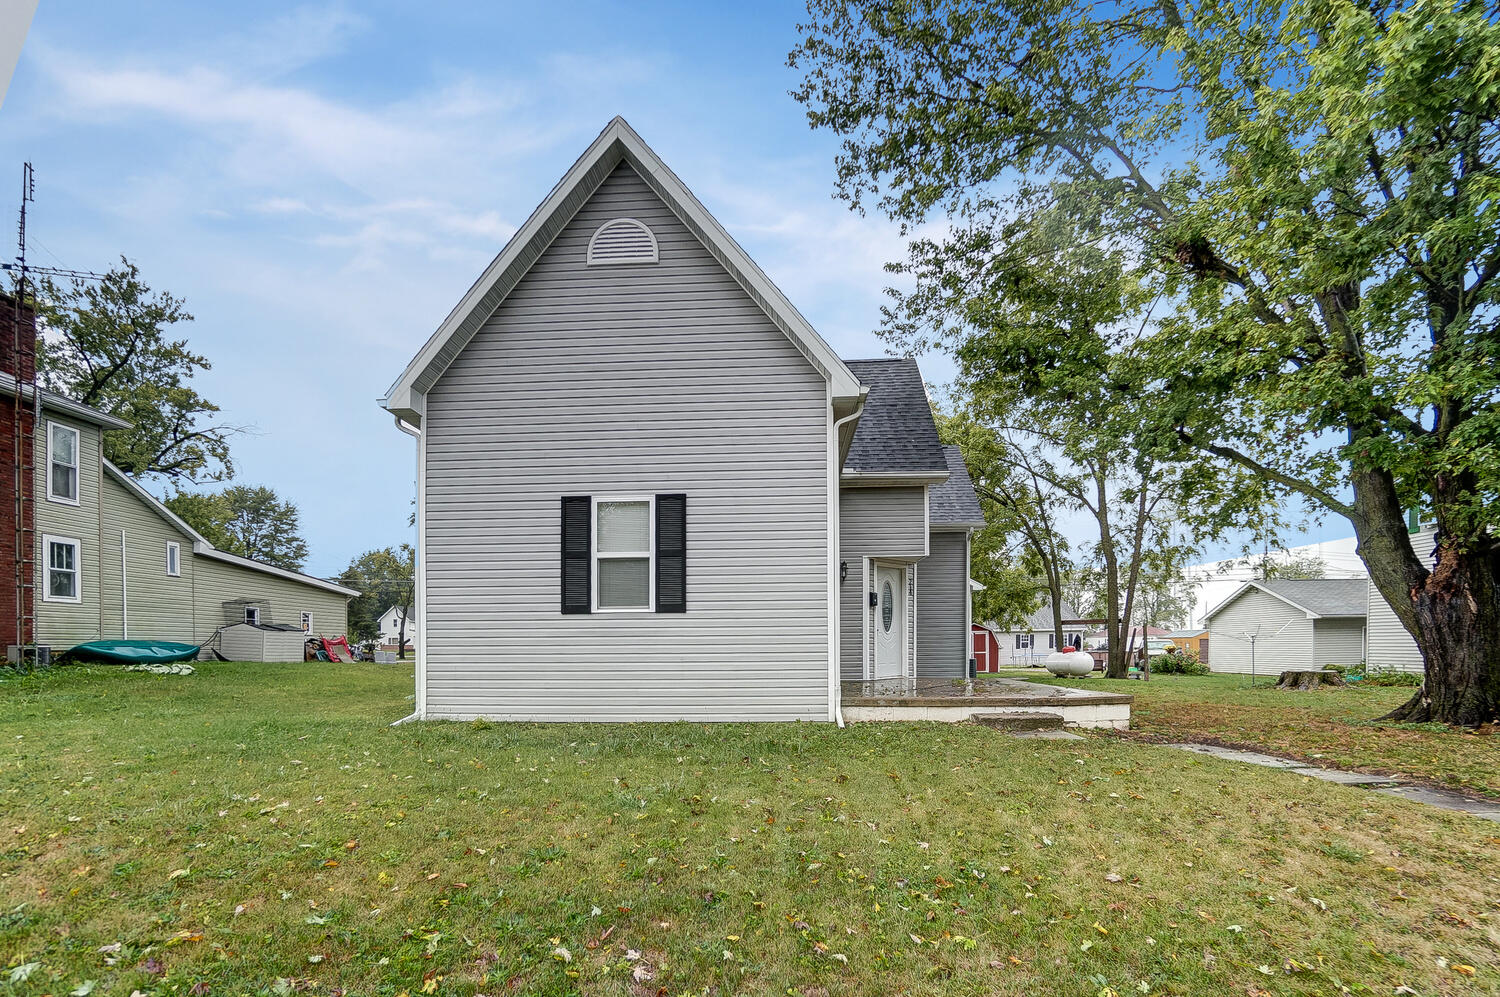 Photo 1 for 214 S Main St Mendon, OH 45862